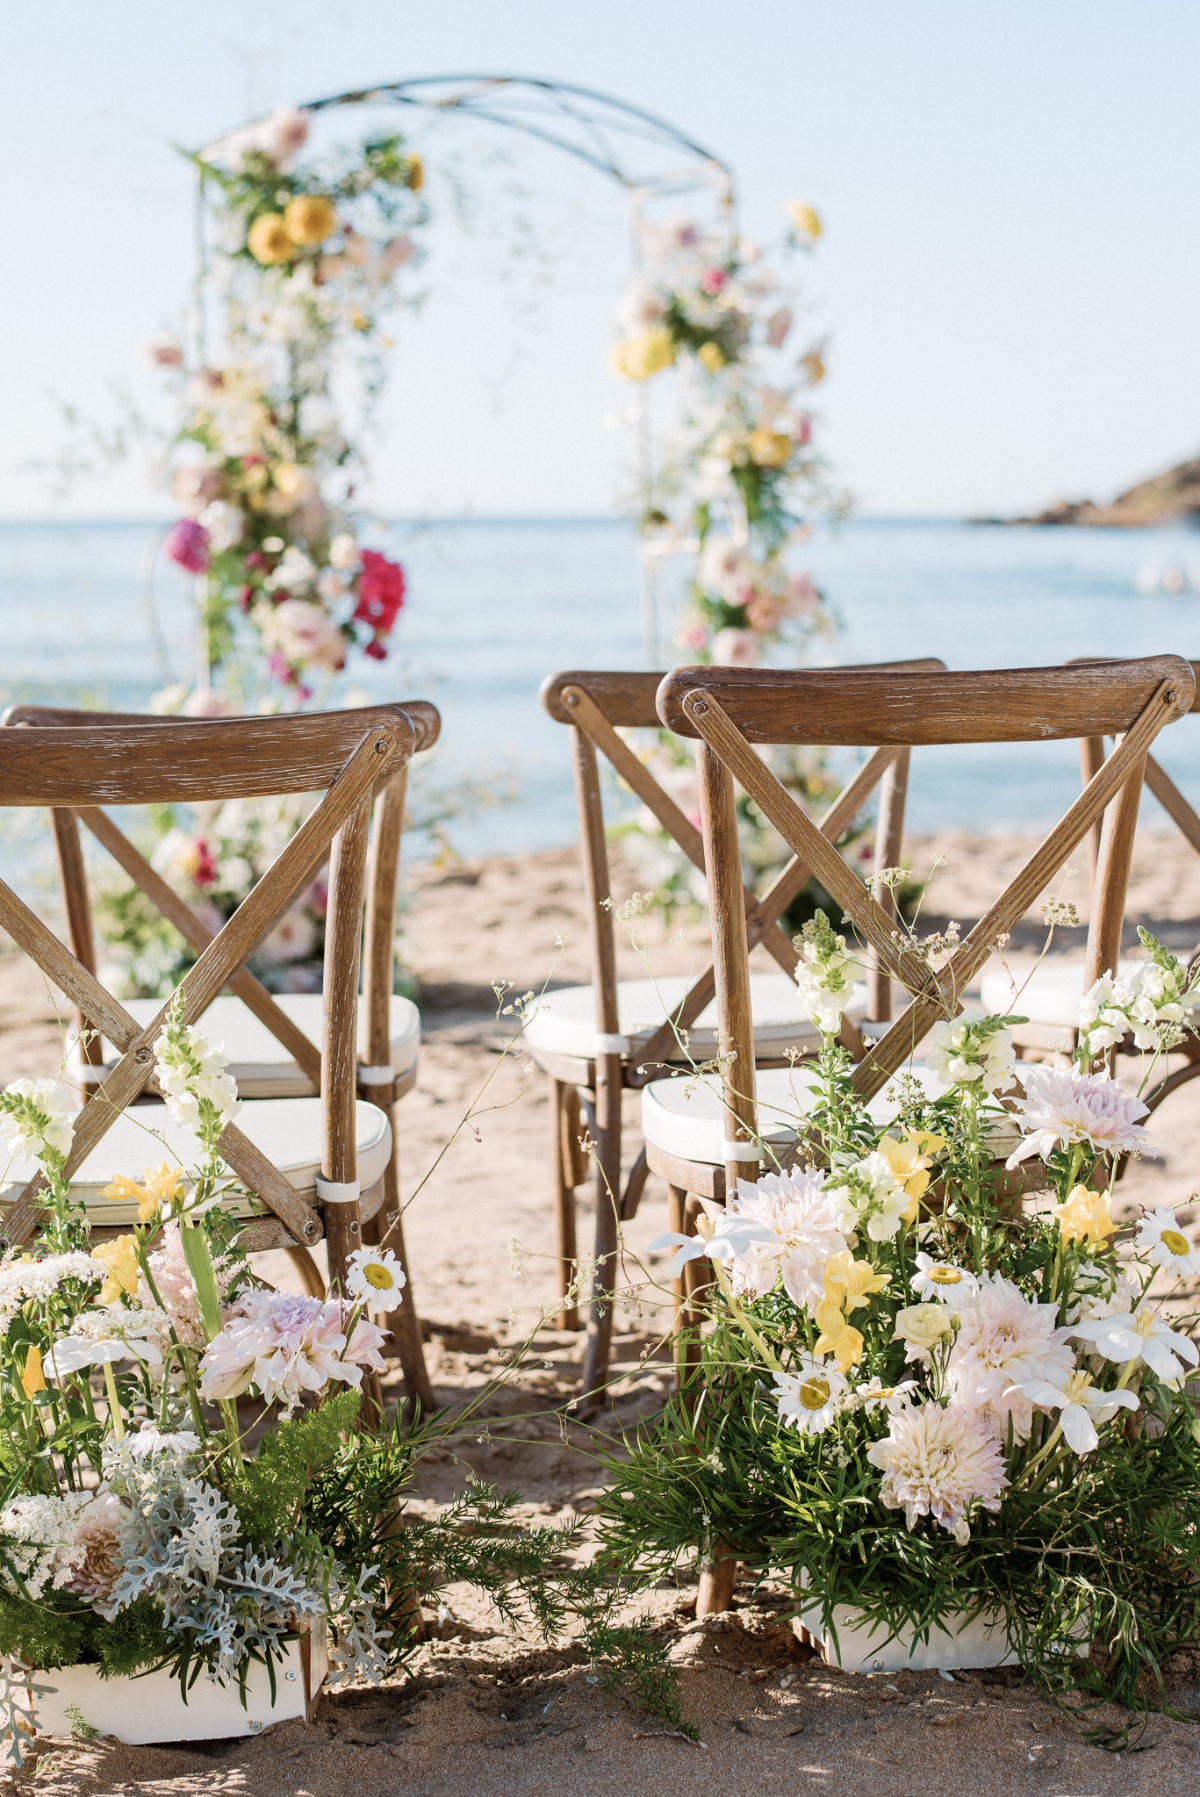 Dusty Blue Summer Vibes in this Crete Wedding Inspiration